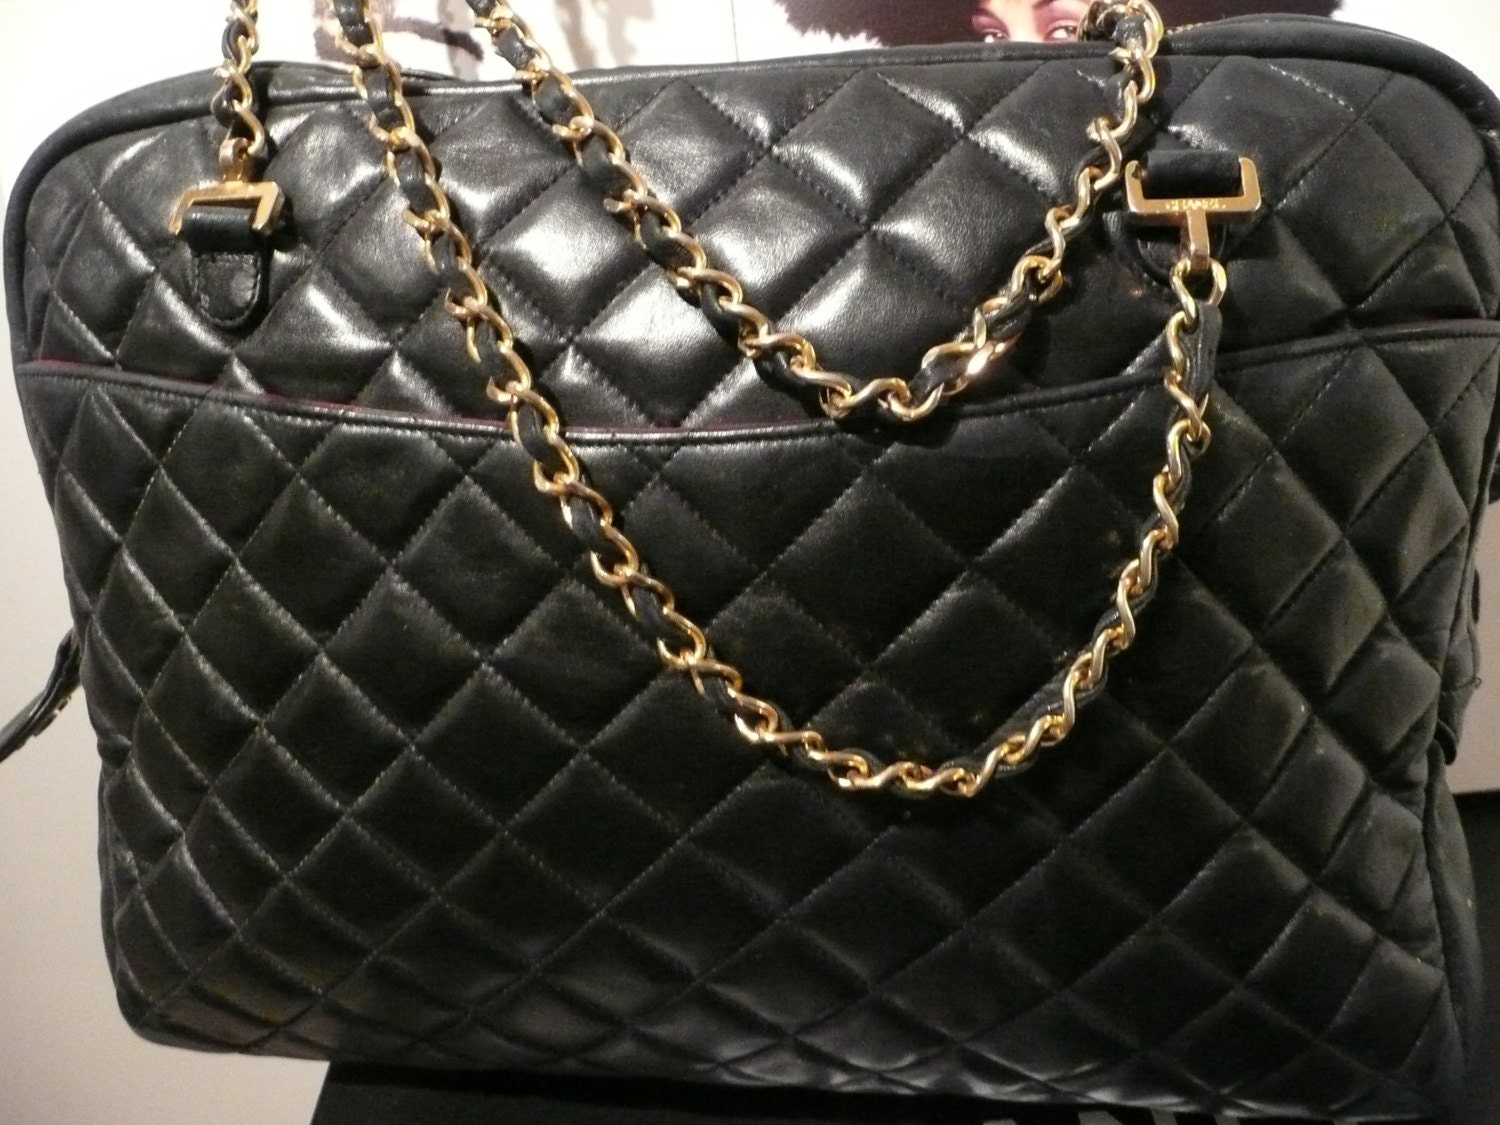 CHANEL BAG JuMBO ViNTAGE CoCO SHoPPER HaNDBAG CLaSSIC DoUBLE GoLD CHaIN STRaP ToTE MaTELASSE QUiLTED LuGGAGE TRaVEL SaC LeATHER 2 PoCKETS